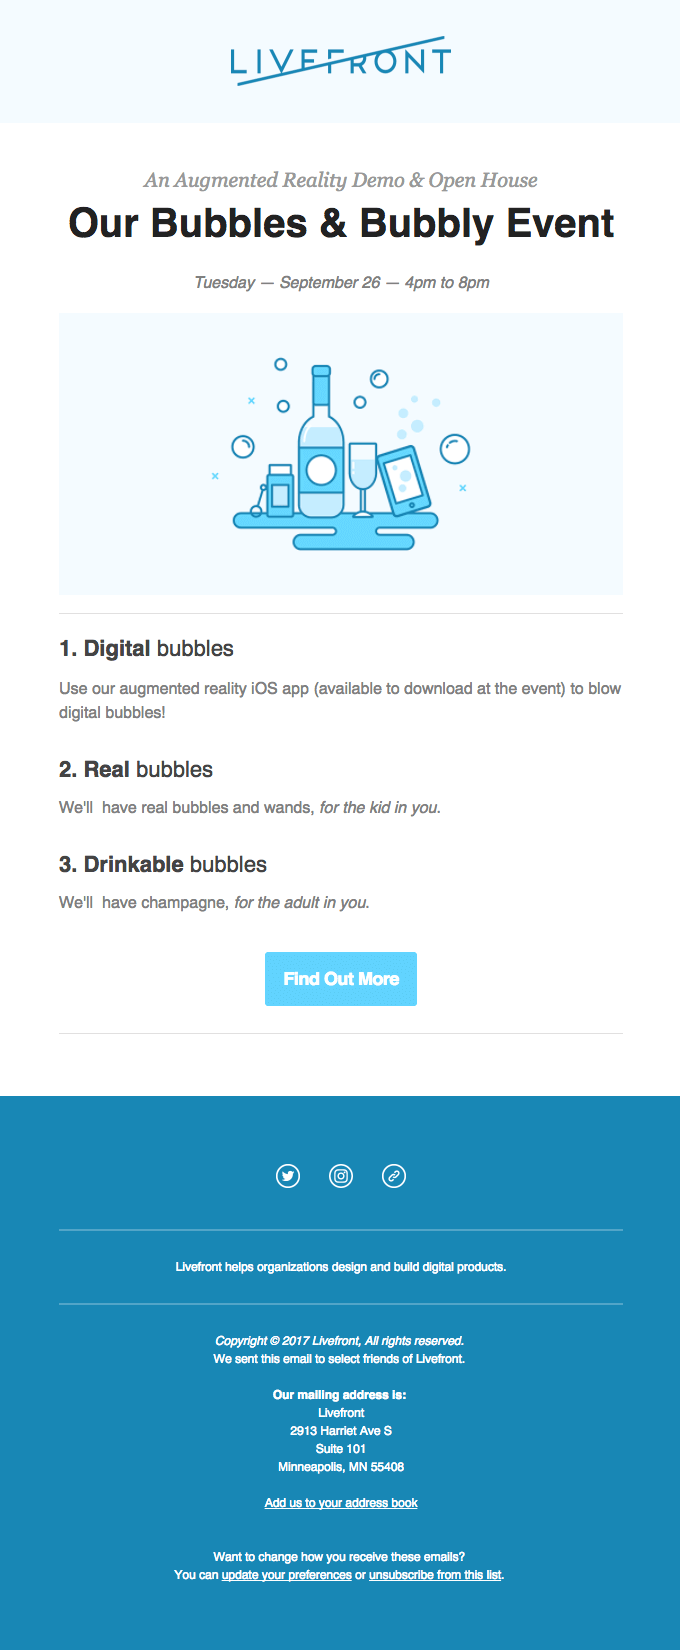 Event invitation email for Livefront augmented reality